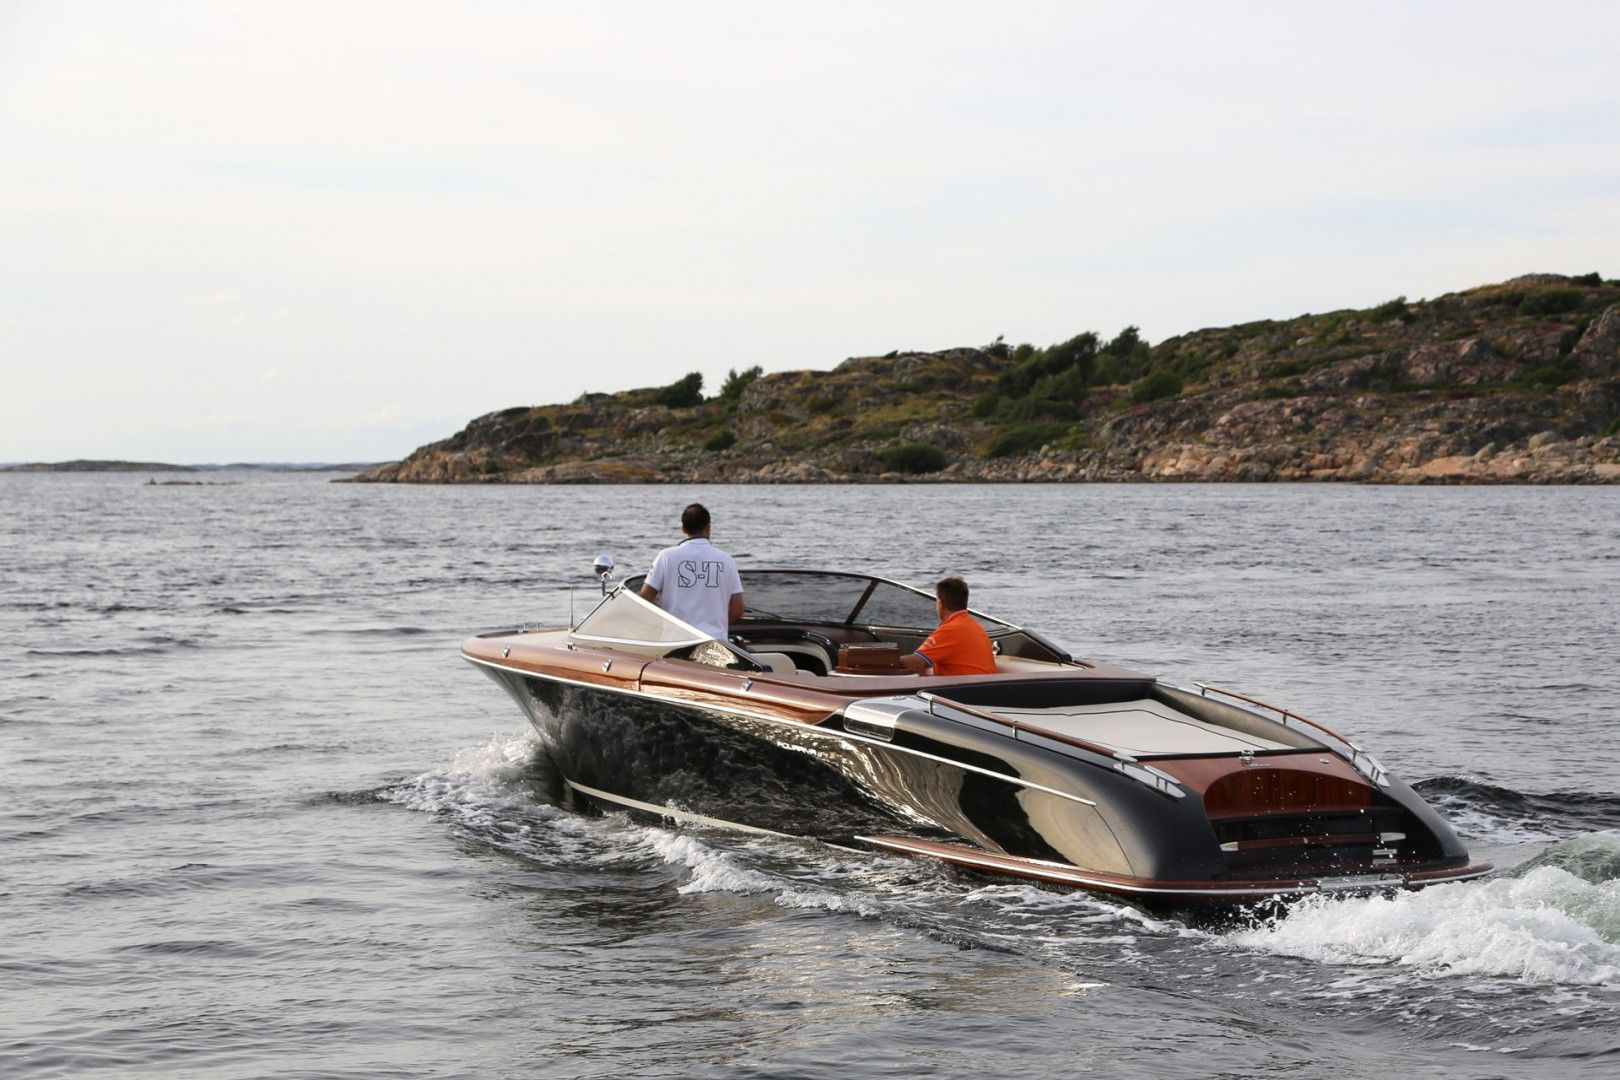 Zwembad Riva Riva 33 Aquariva Super Enjoy Boating